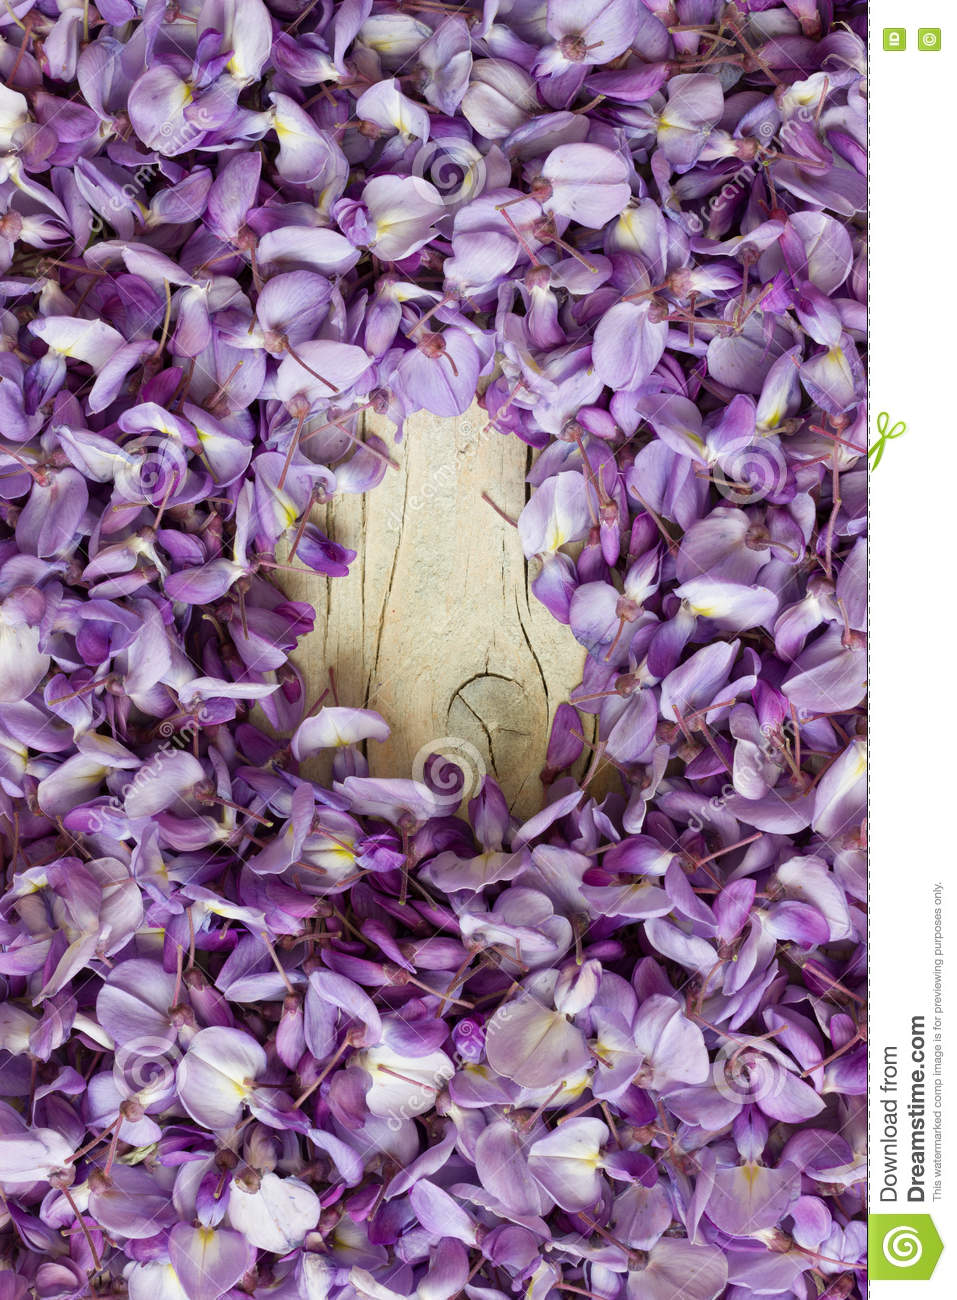 Violet wisteria as background stock image image of lila blossom violet flowers of wisteria on white wooden background with visible small space in the center mightylinksfo